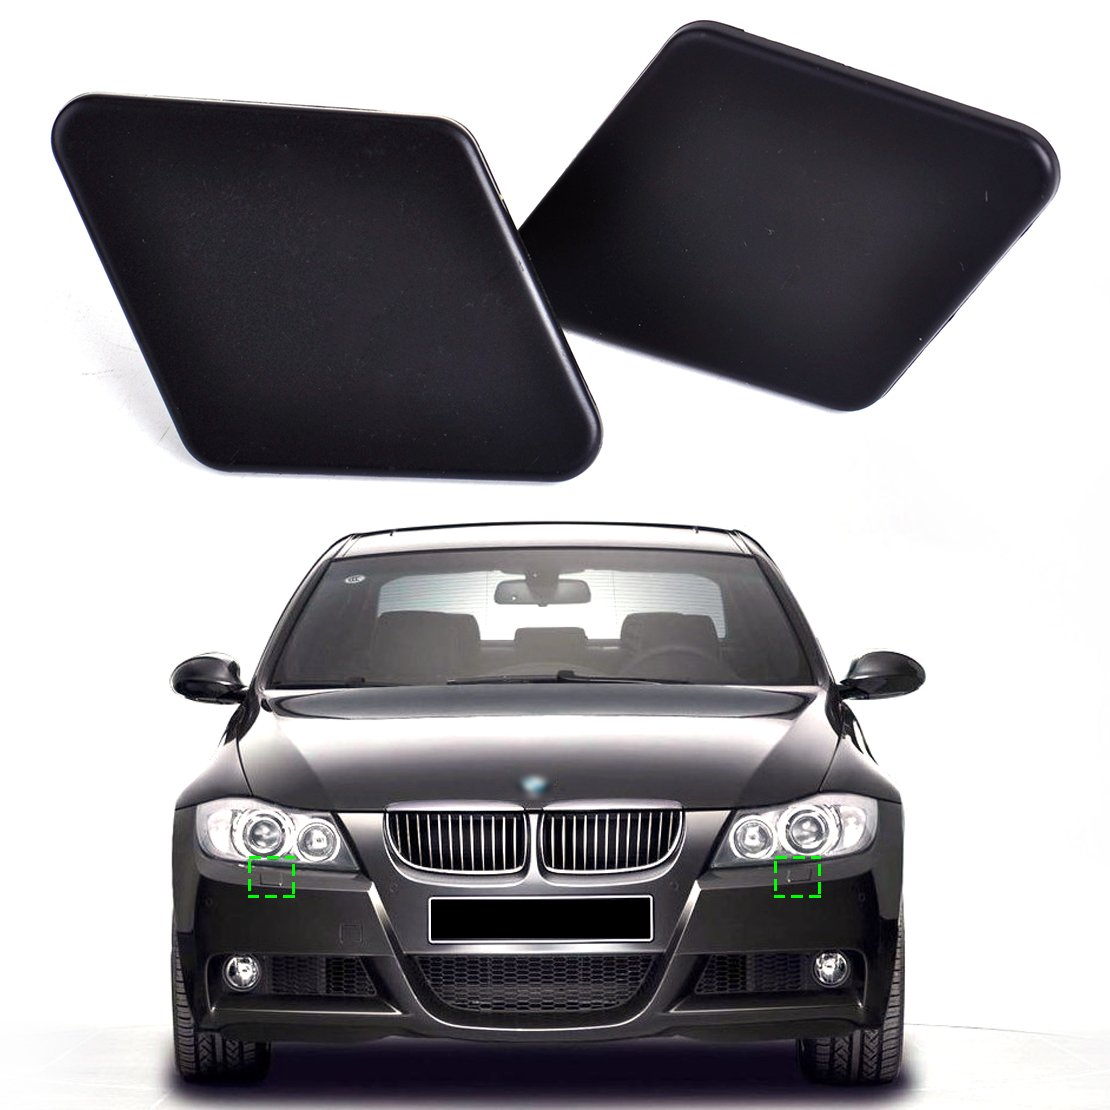 Headlight Washer Cover Nozzle Cap Headlamp Nozzle Cover UPSM 1 Pair Front Bumper Left /& Right Fit for BMW 3 Series E90//E91 2005-2009 Headlamp Cleaning Windshield Cover 61678031307 61678031308